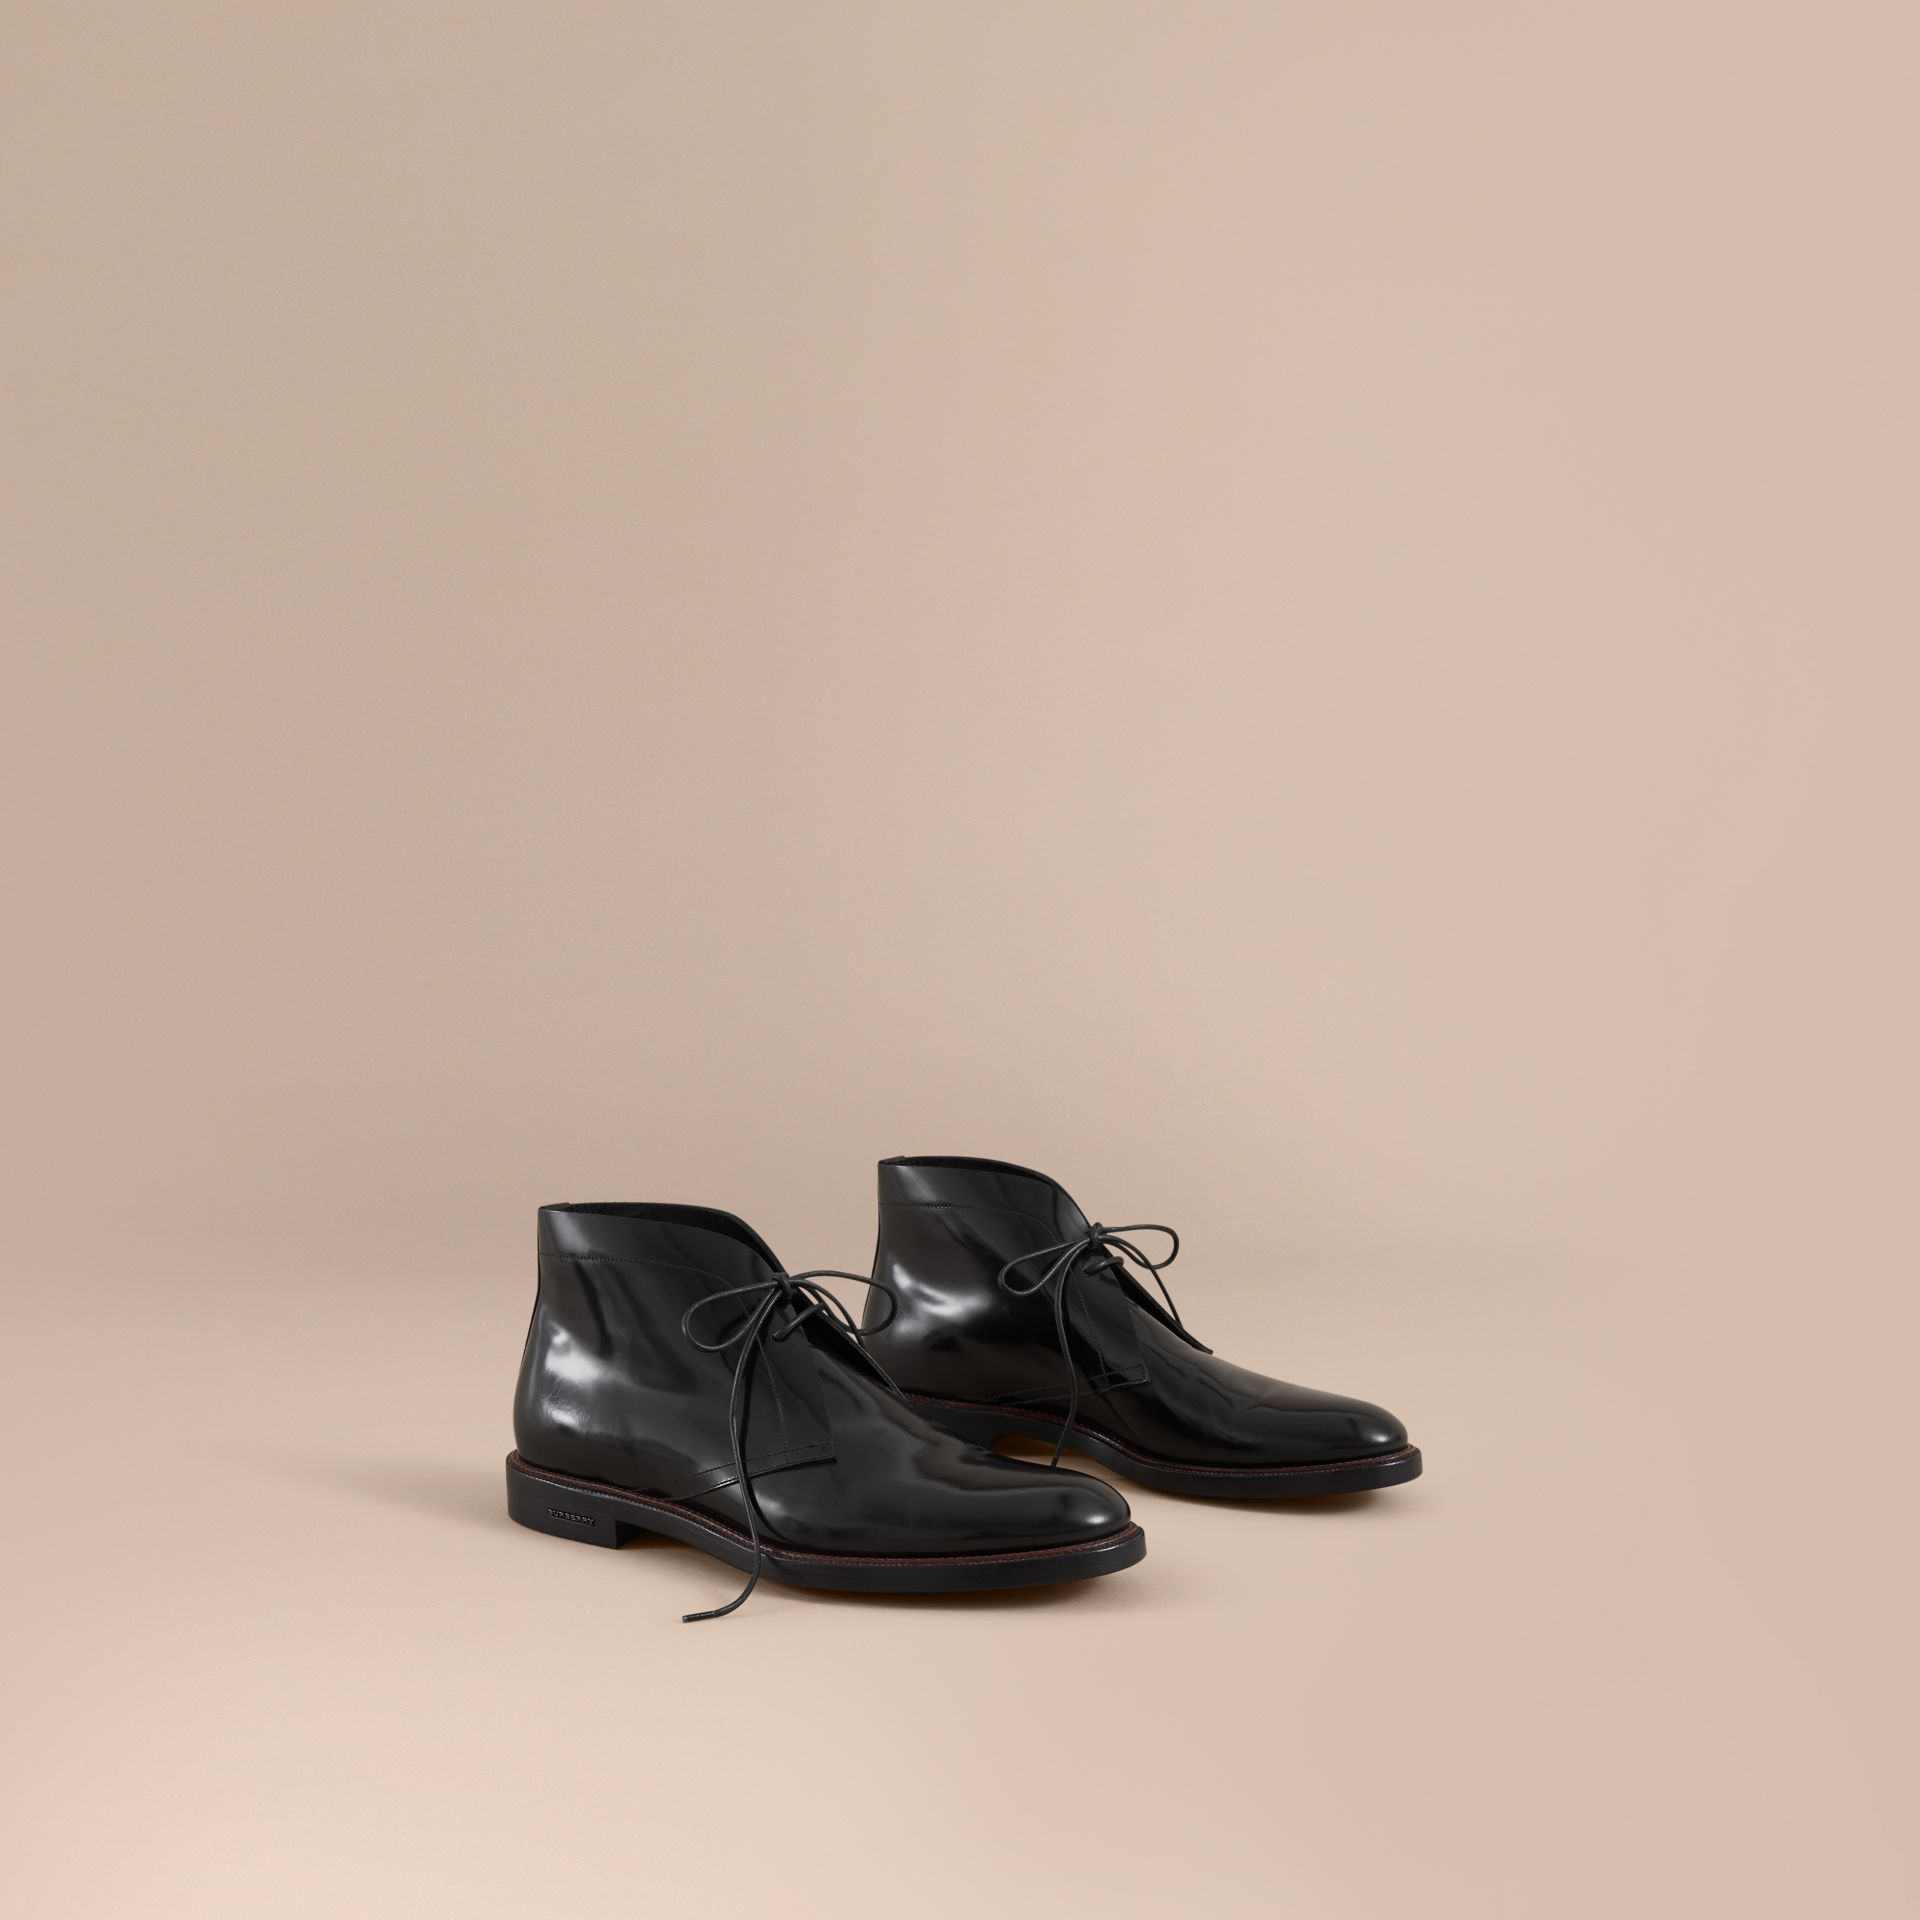 Polished Leather Desert Boots in Black - Men | Burberry Canada - gallery image 1